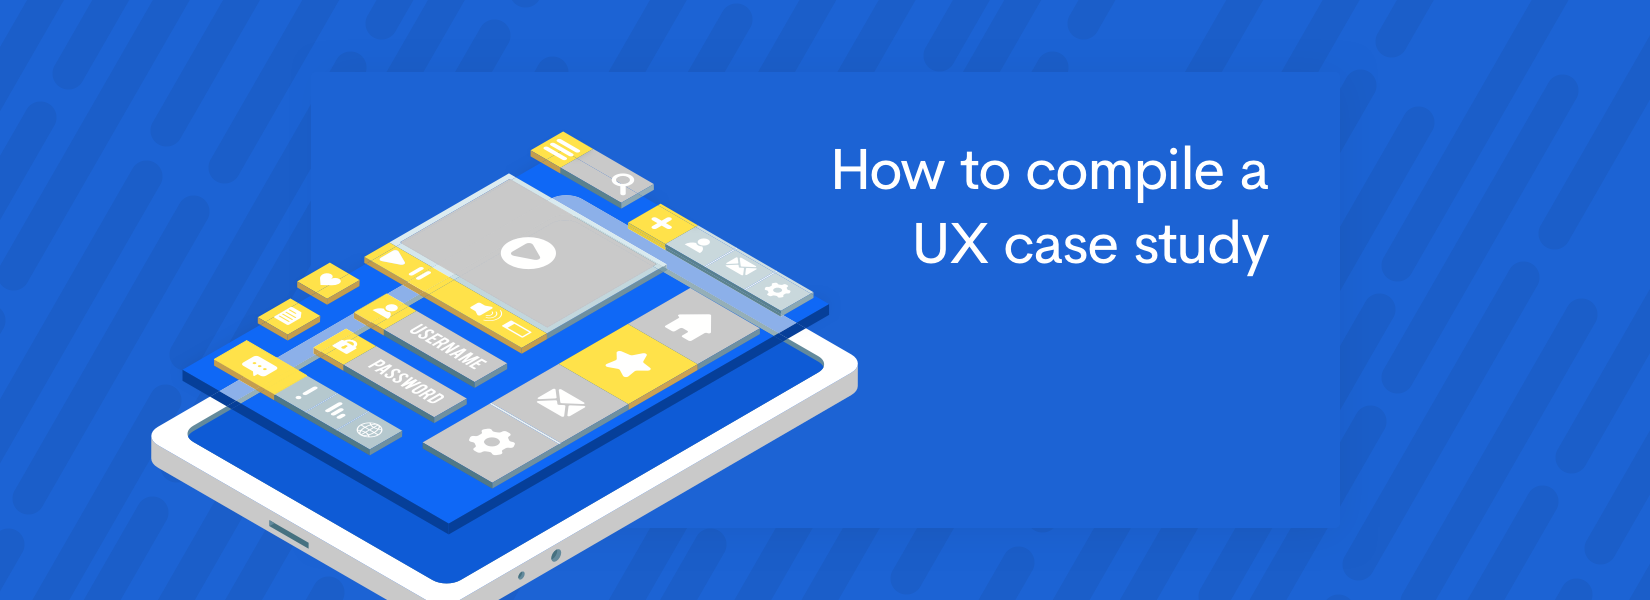 How to compile a UX Case Study